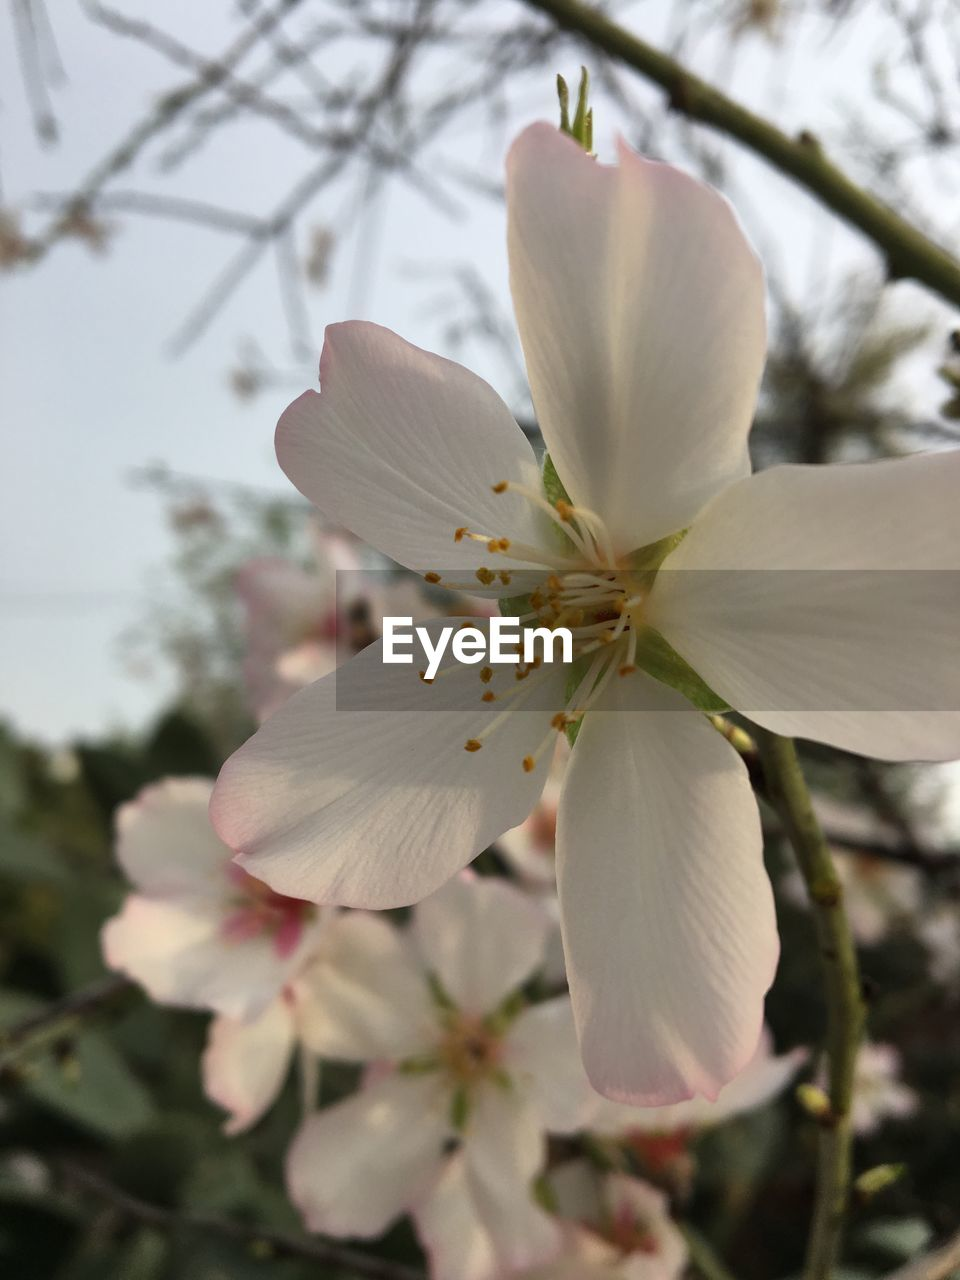 flowering plant, plant, flower, fragility, vulnerability, petal, growth, freshness, beauty in nature, close-up, inflorescence, flower head, focus on foreground, blossom, pollen, nature, white color, no people, botany, tree, springtime, outdoors, cherry blossom